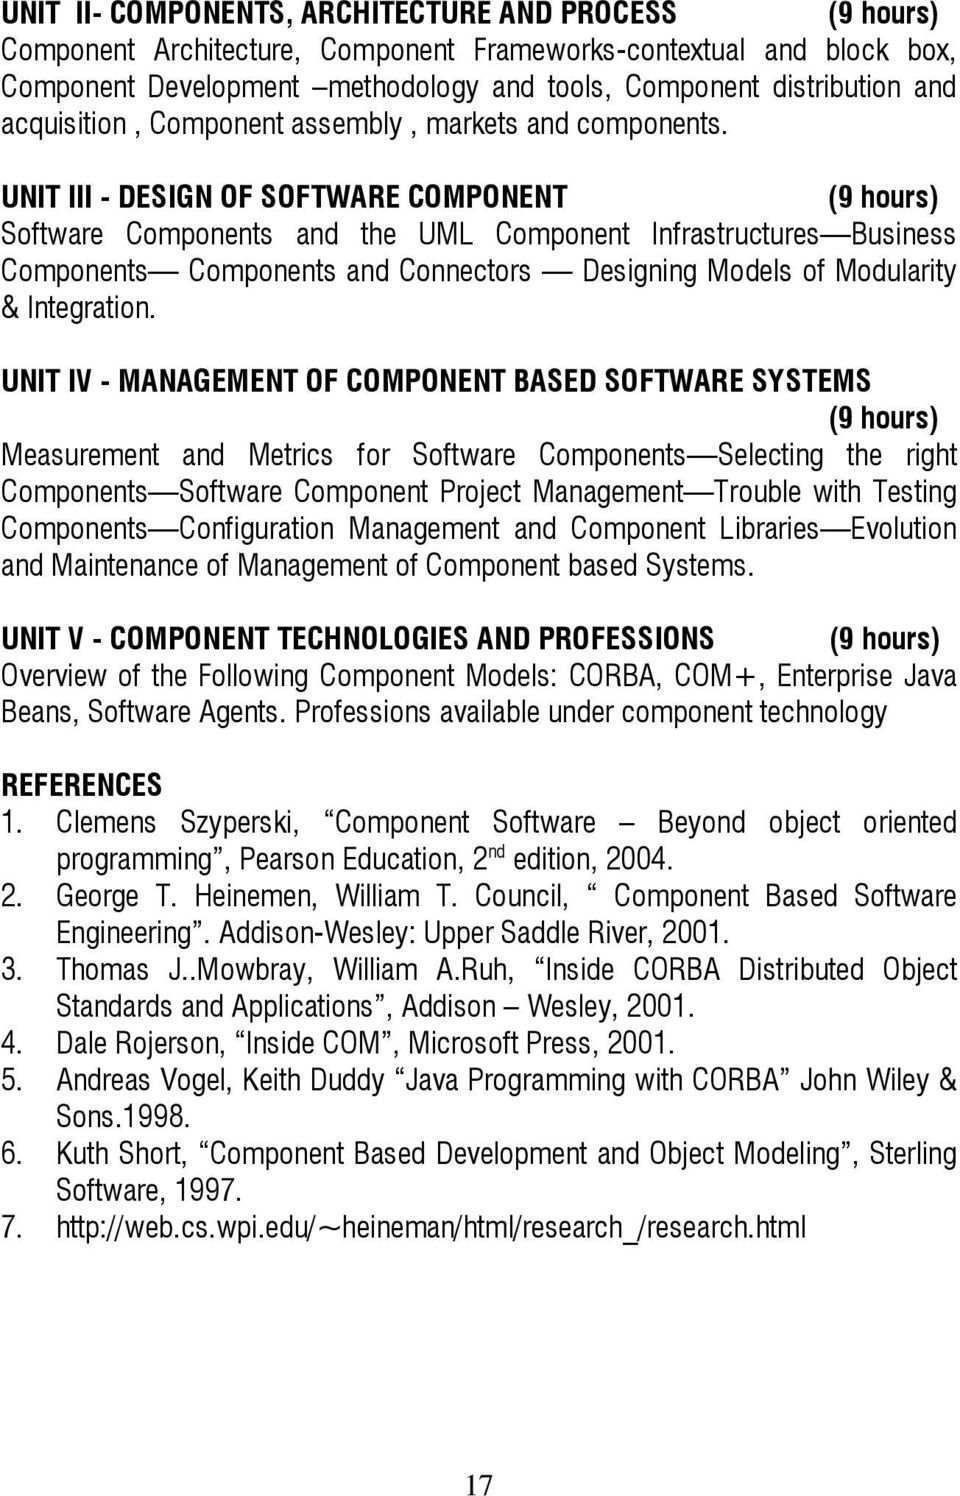 UNIT III - DESIGN OF SOFTWARE COMPONENT Software Components and the UML Component Infrastructures Business Components Components and Connectors Designing Models of Modularity & Integration.